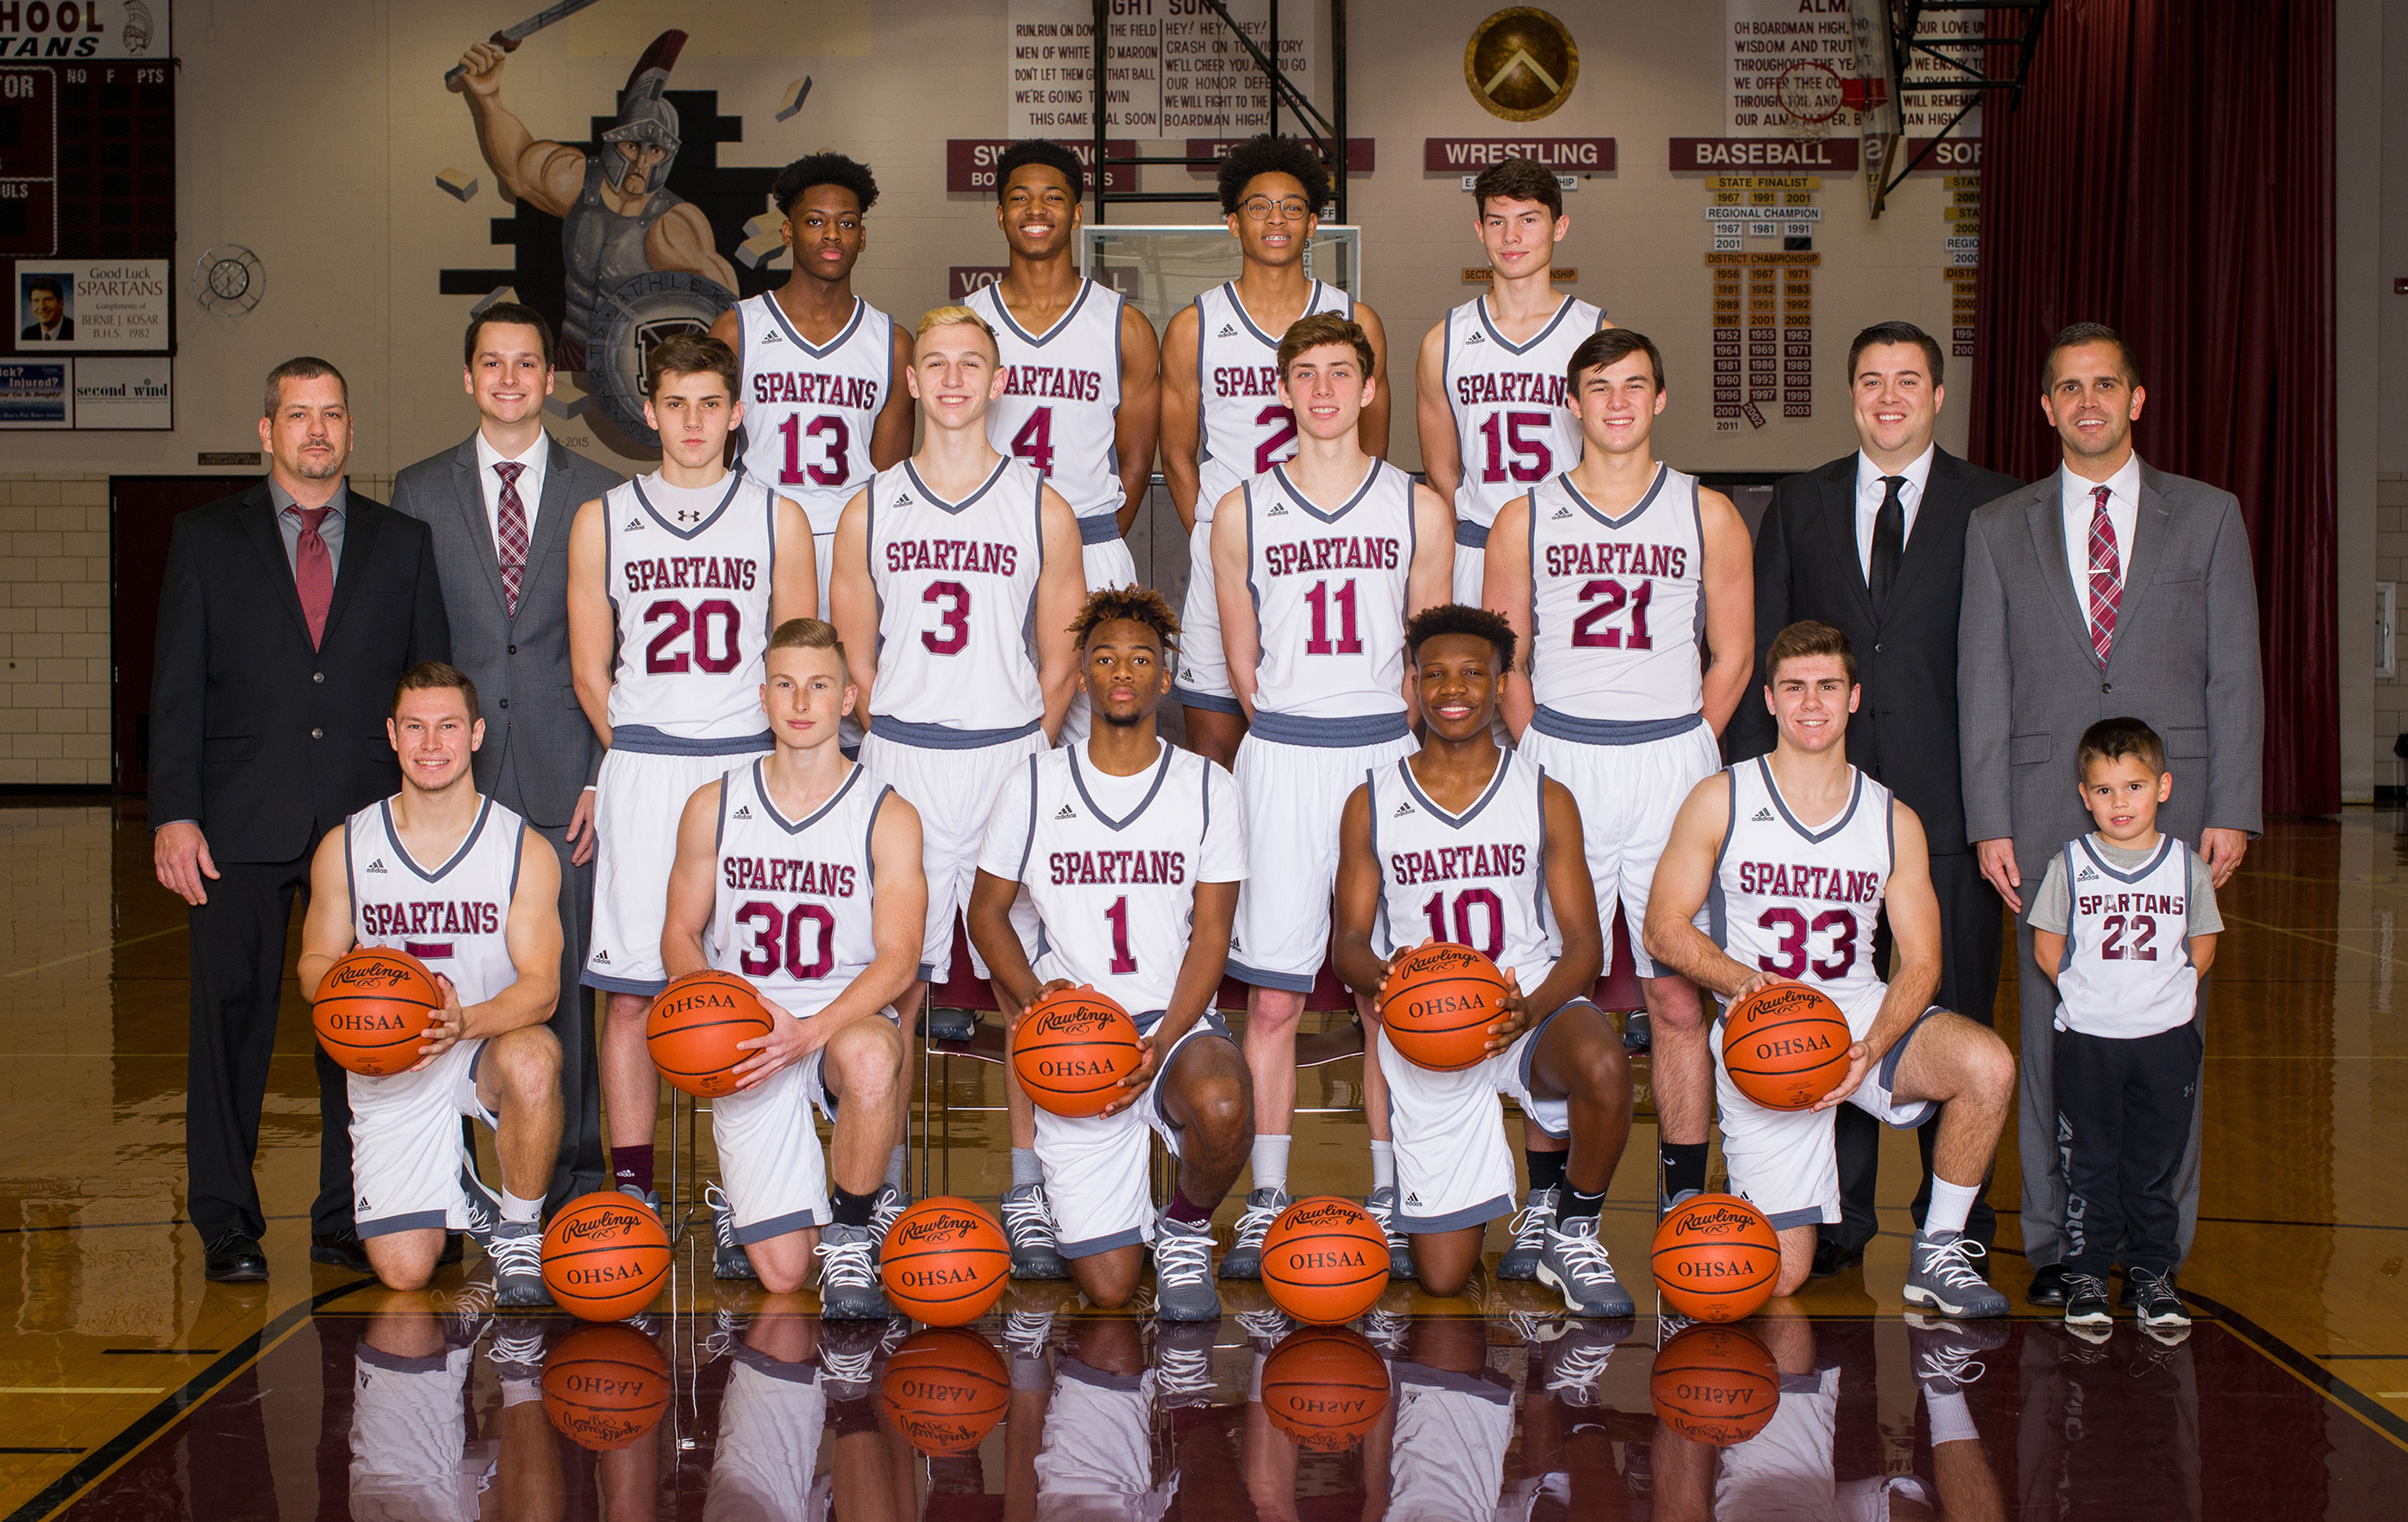 Boardman boys varsity basketball team